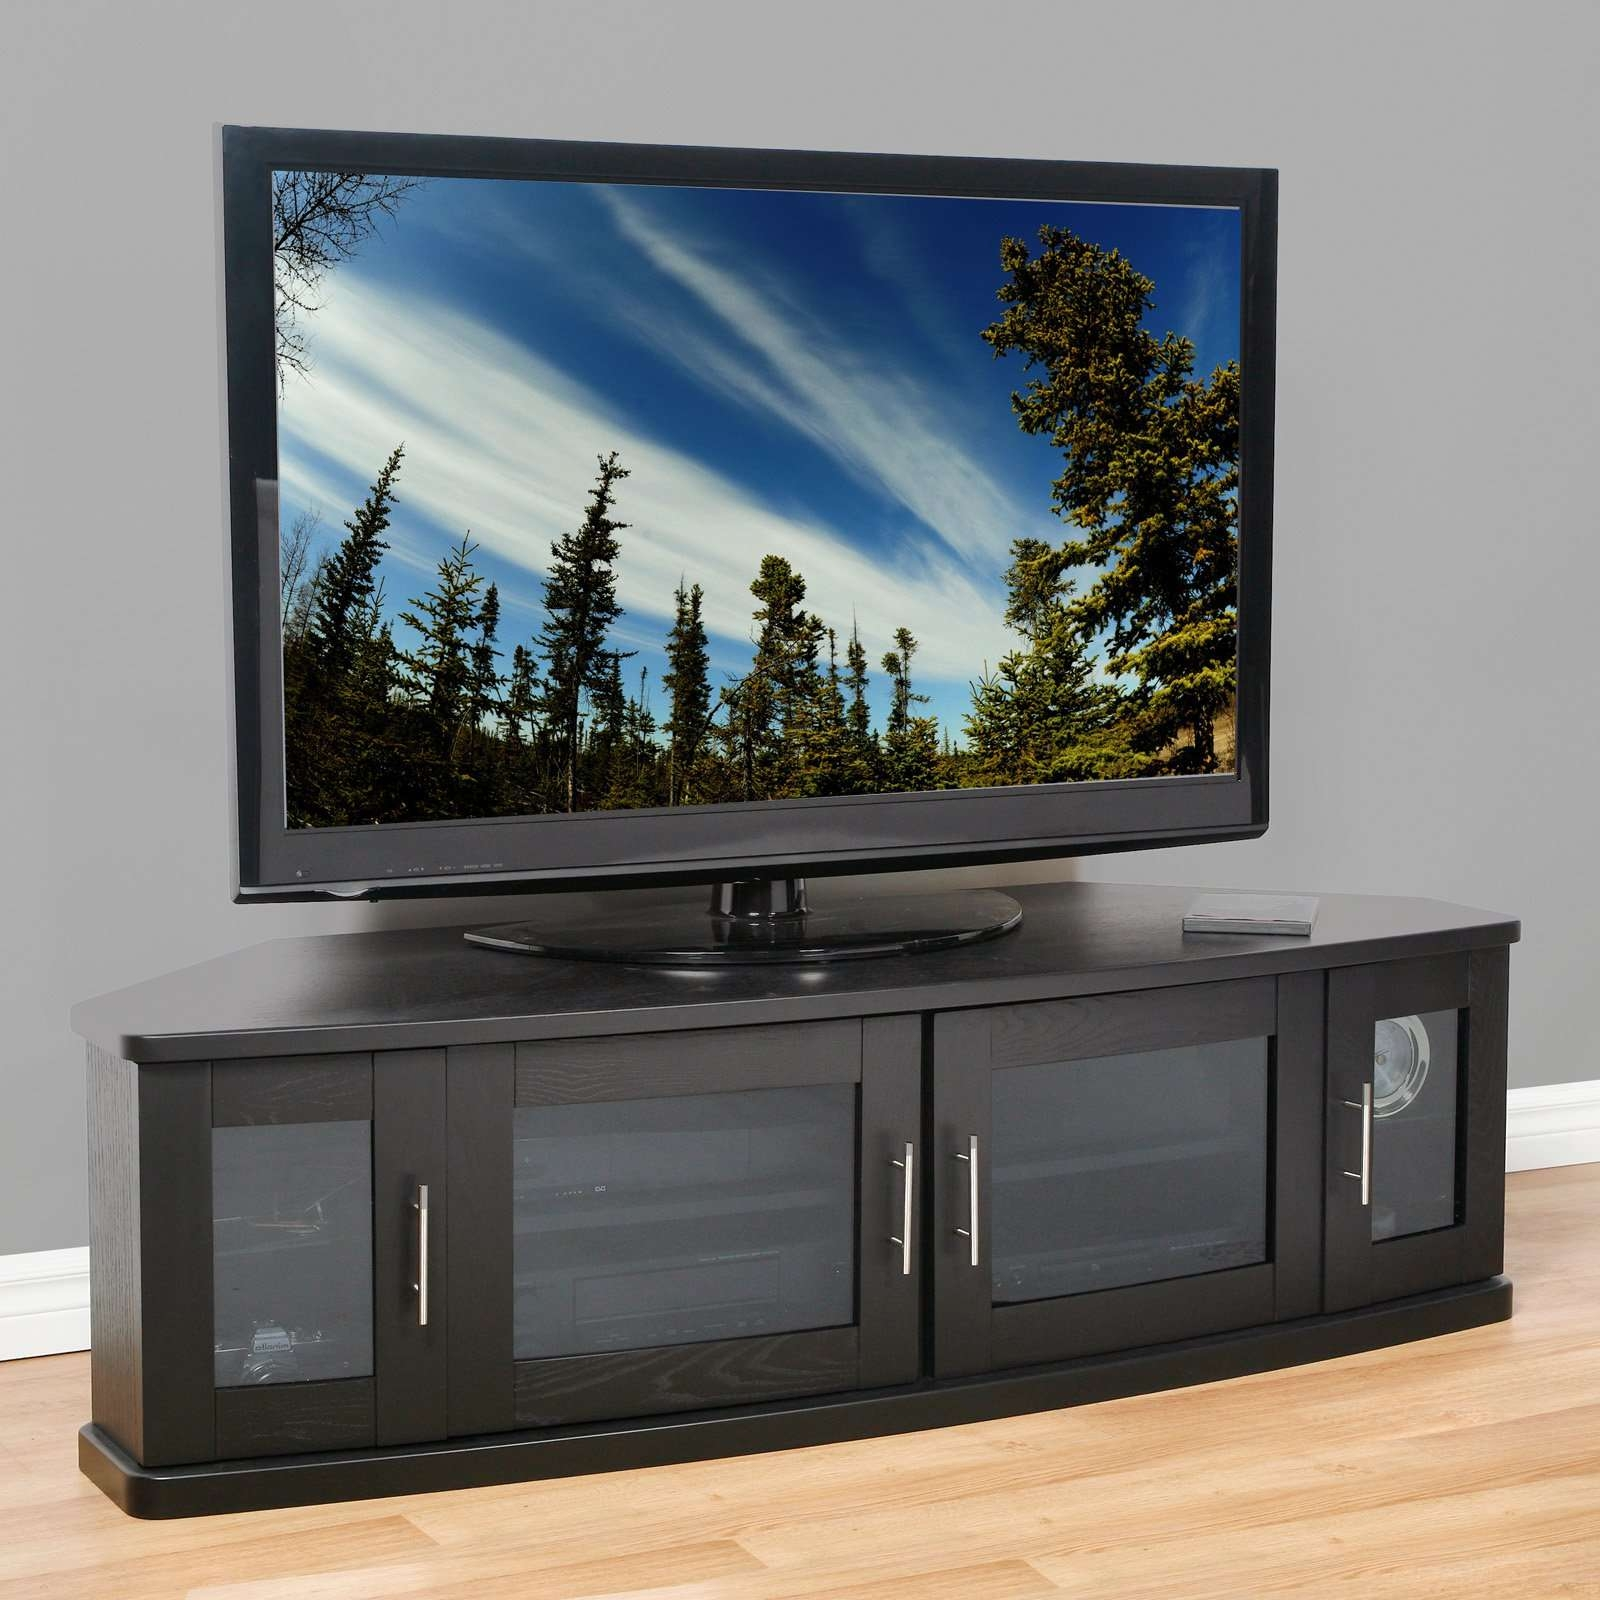 Plateau Newport 62 Inch Corner Tv Stand In Black – Walmart In Modern Tv Stands For 60 Inch Tvs (View 9 of 15)